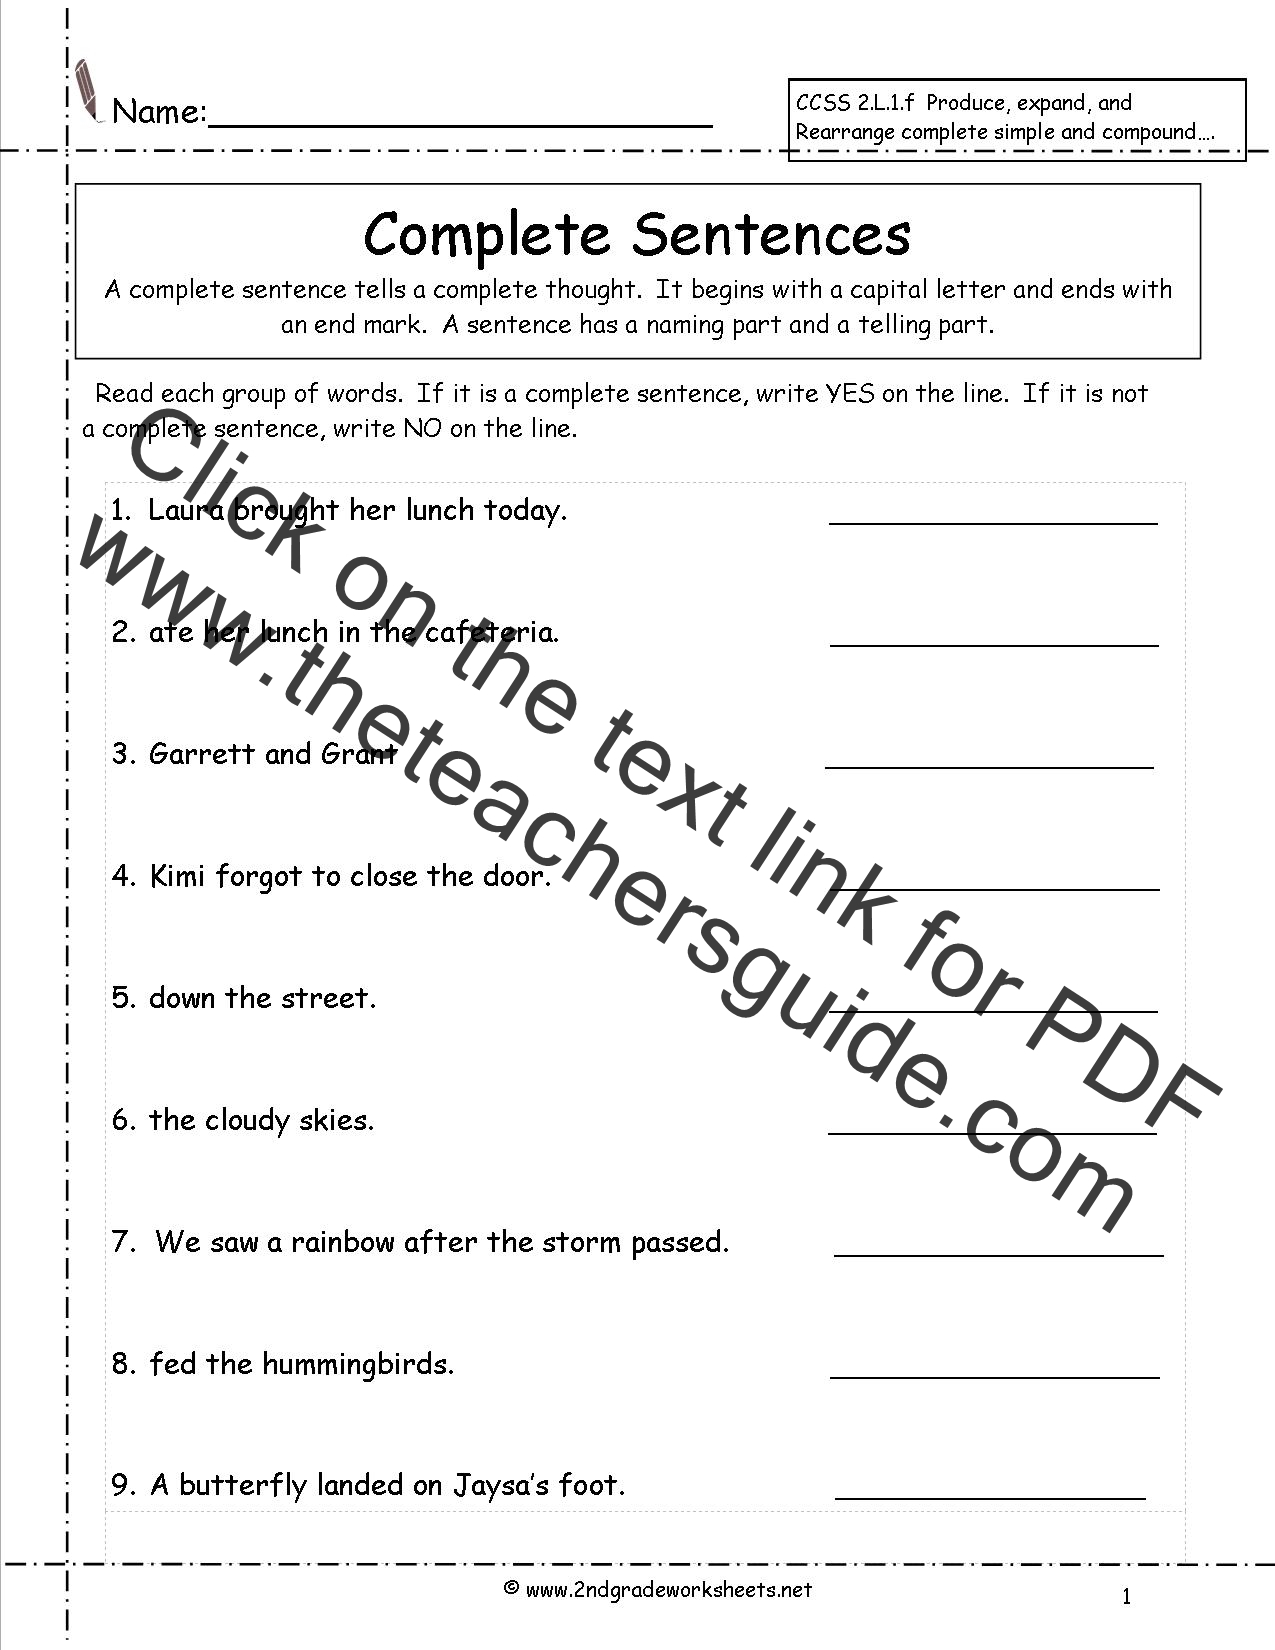 Worksheets Sentence Correction Worksheets second grade sentences worksheets ccss 2 l 1 f worksheets